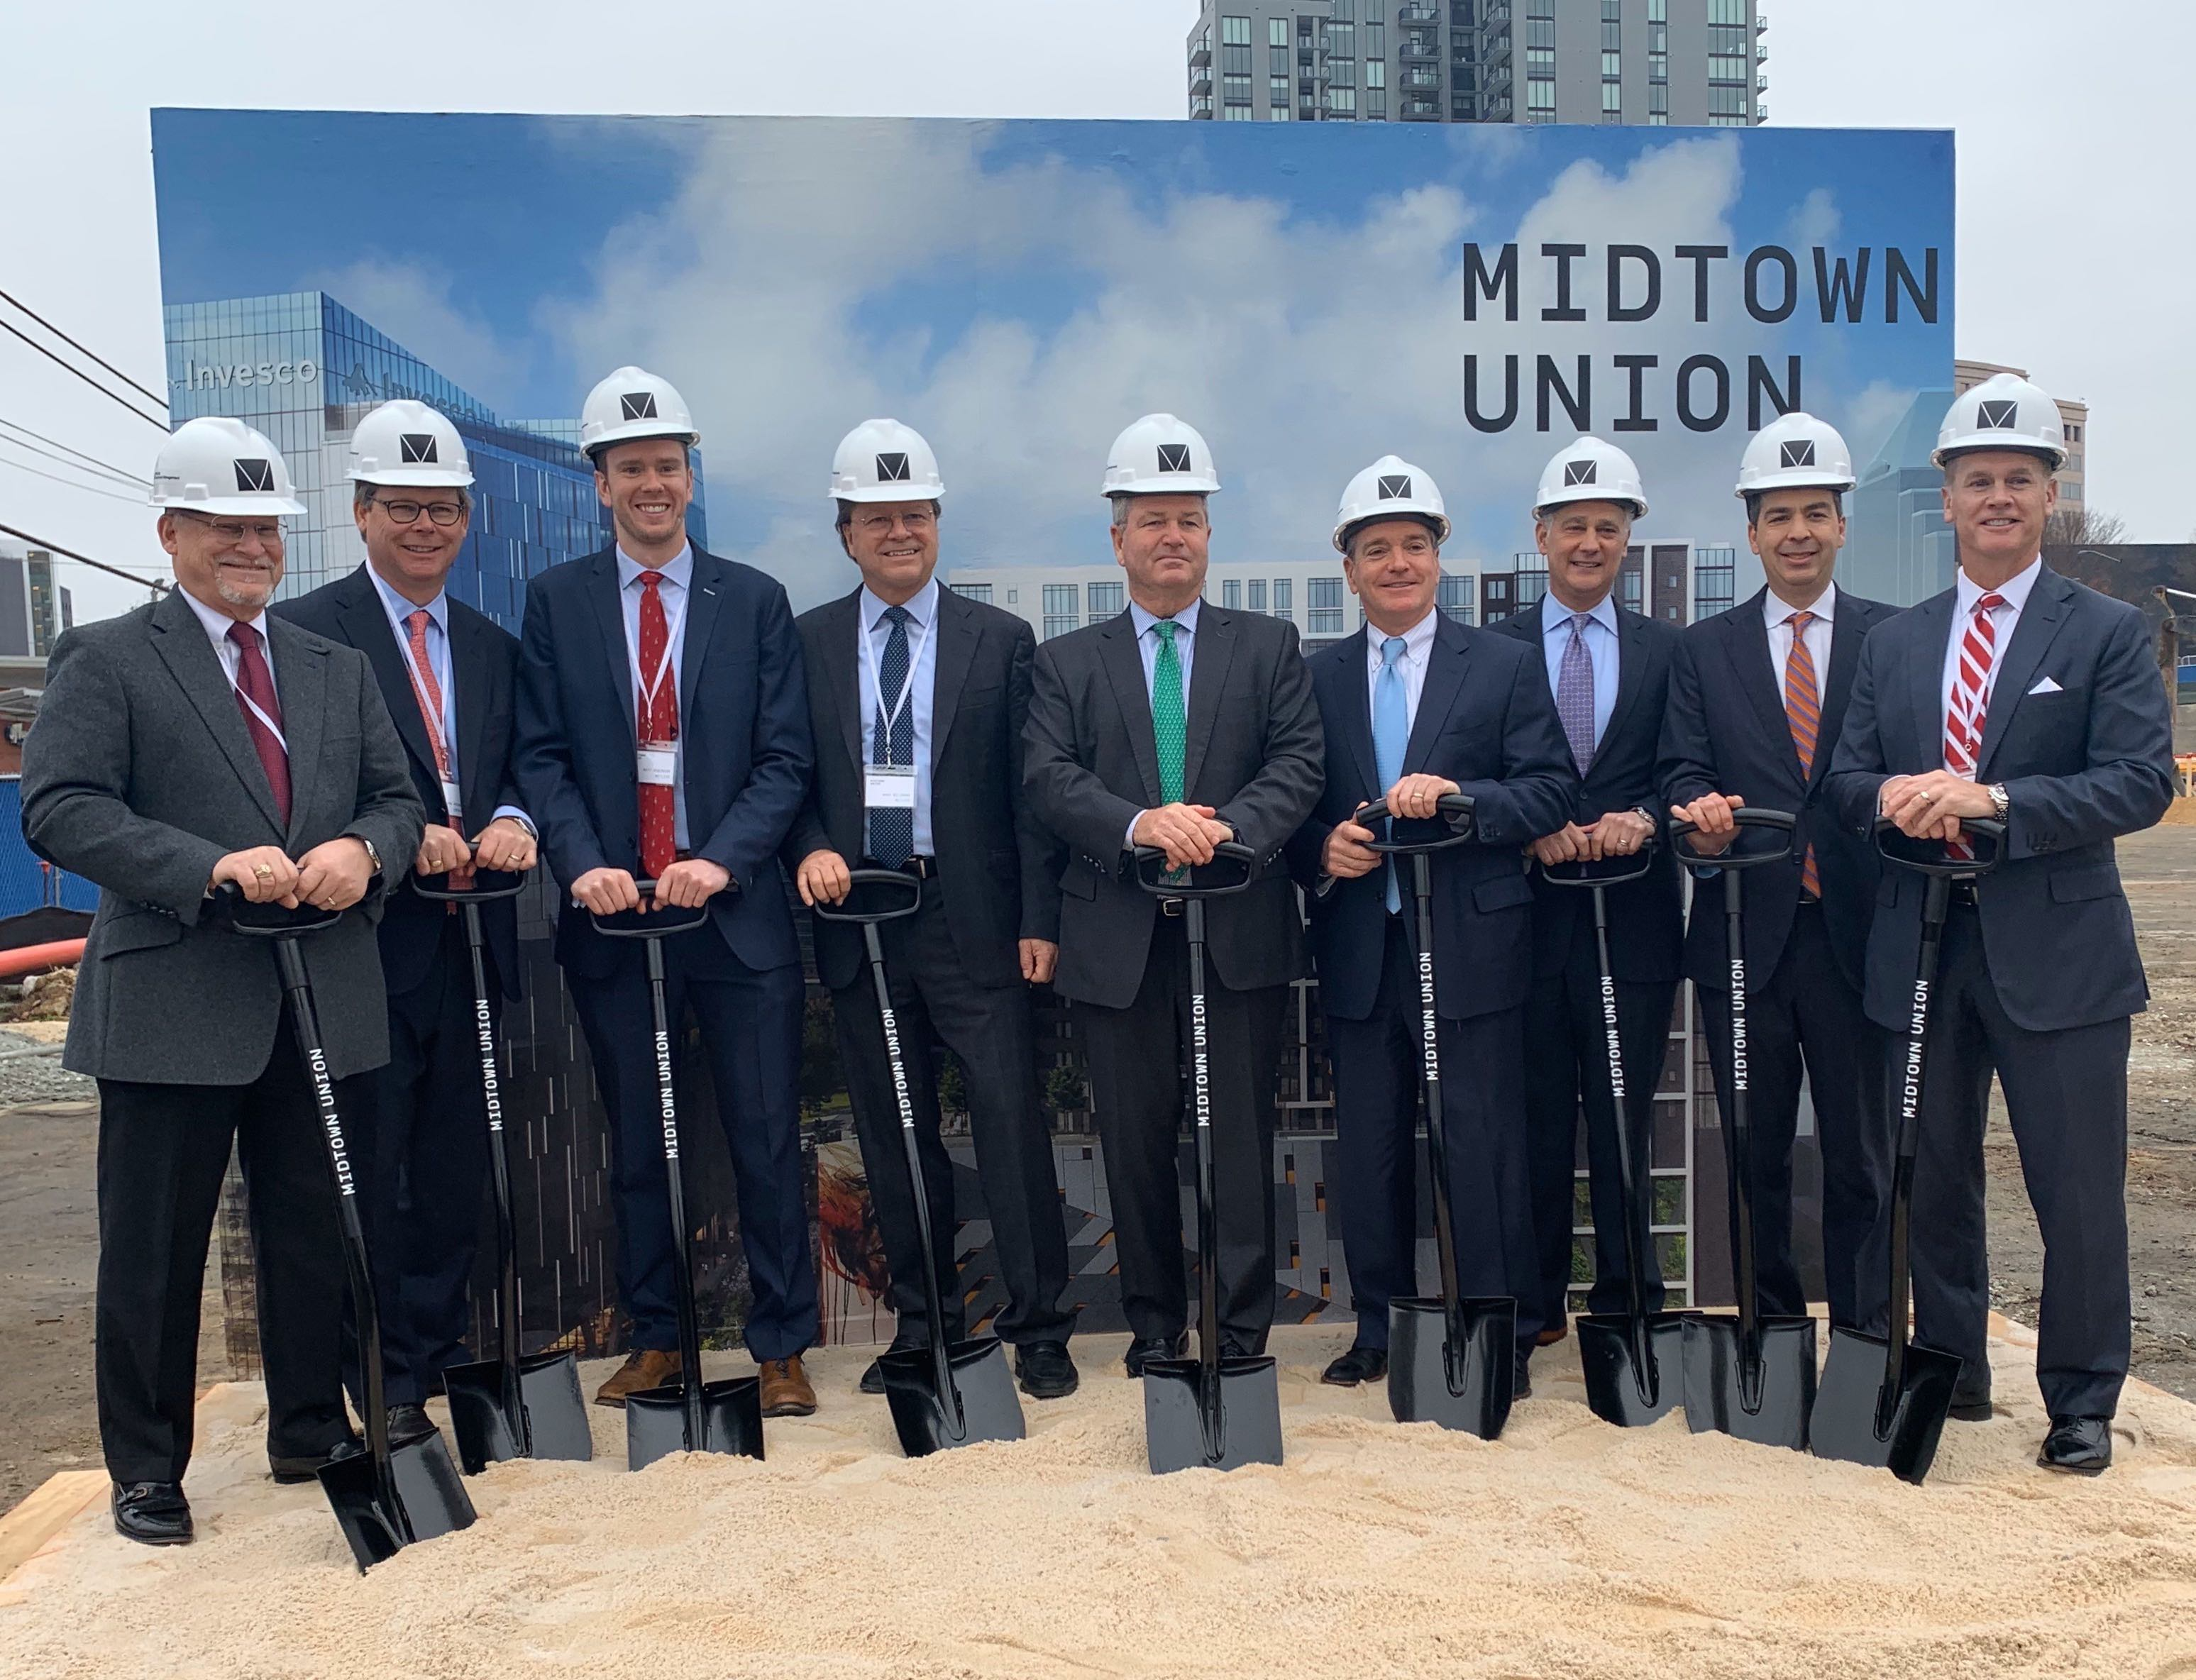 Midtown Union, a large mixed-use project at the north end of the Midtown district, broke ground December 9 during a ceremony attended by developers and other local and national business leaders.